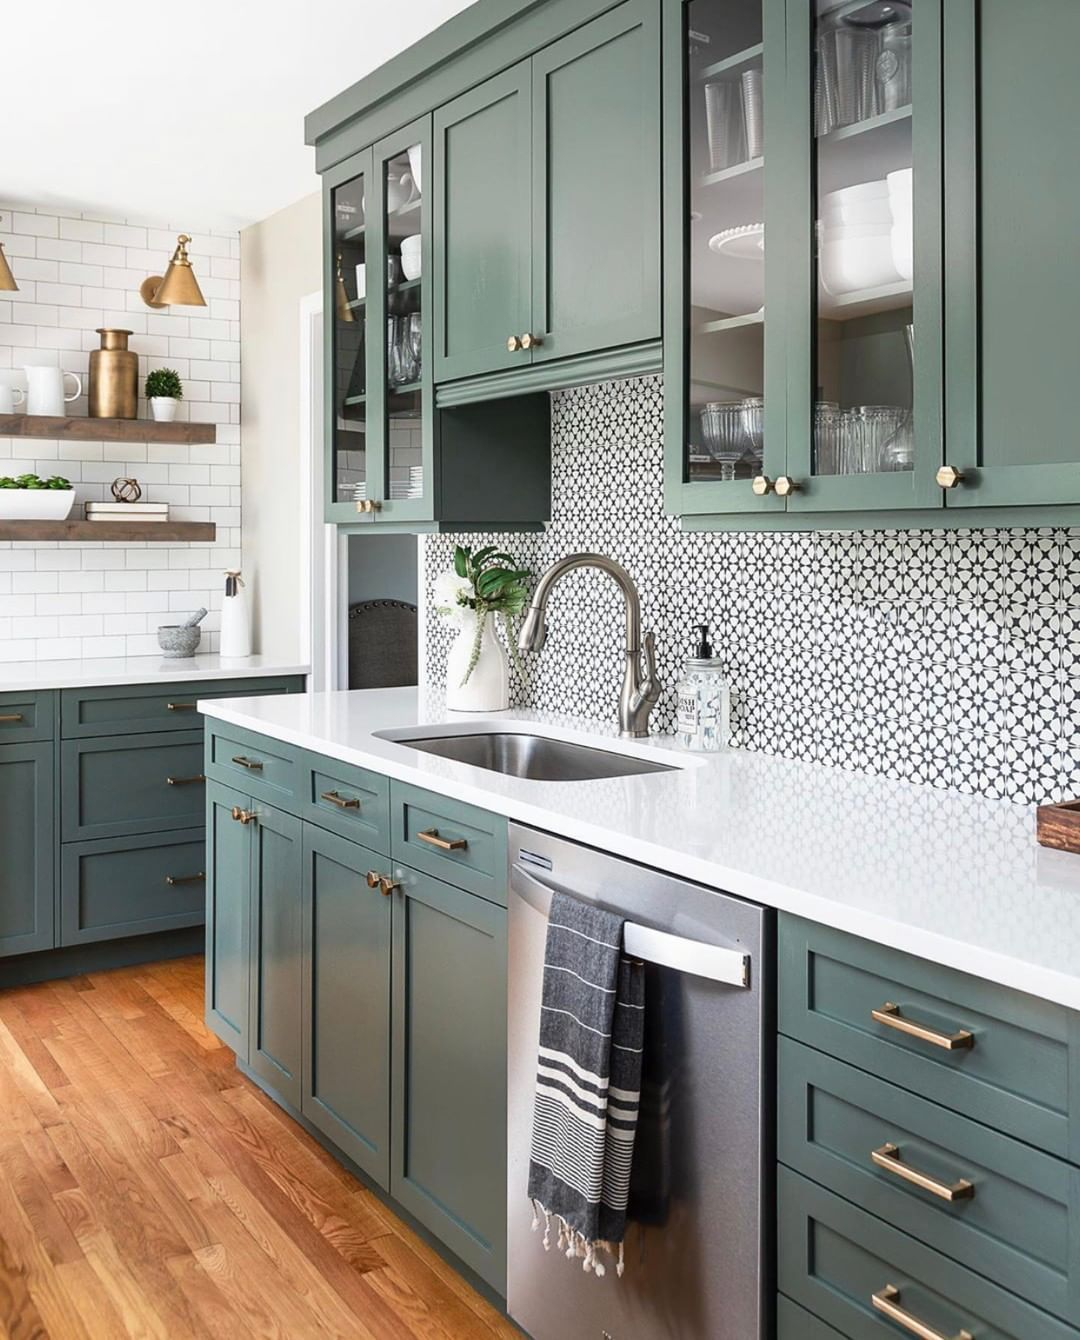 Hello Kitchen On Instagram Congratulations To Chadesslingerdesign For Blowing Up Houzz With This Stunn In 2020 Green Cabinets Kitchen Renovation White Countertops